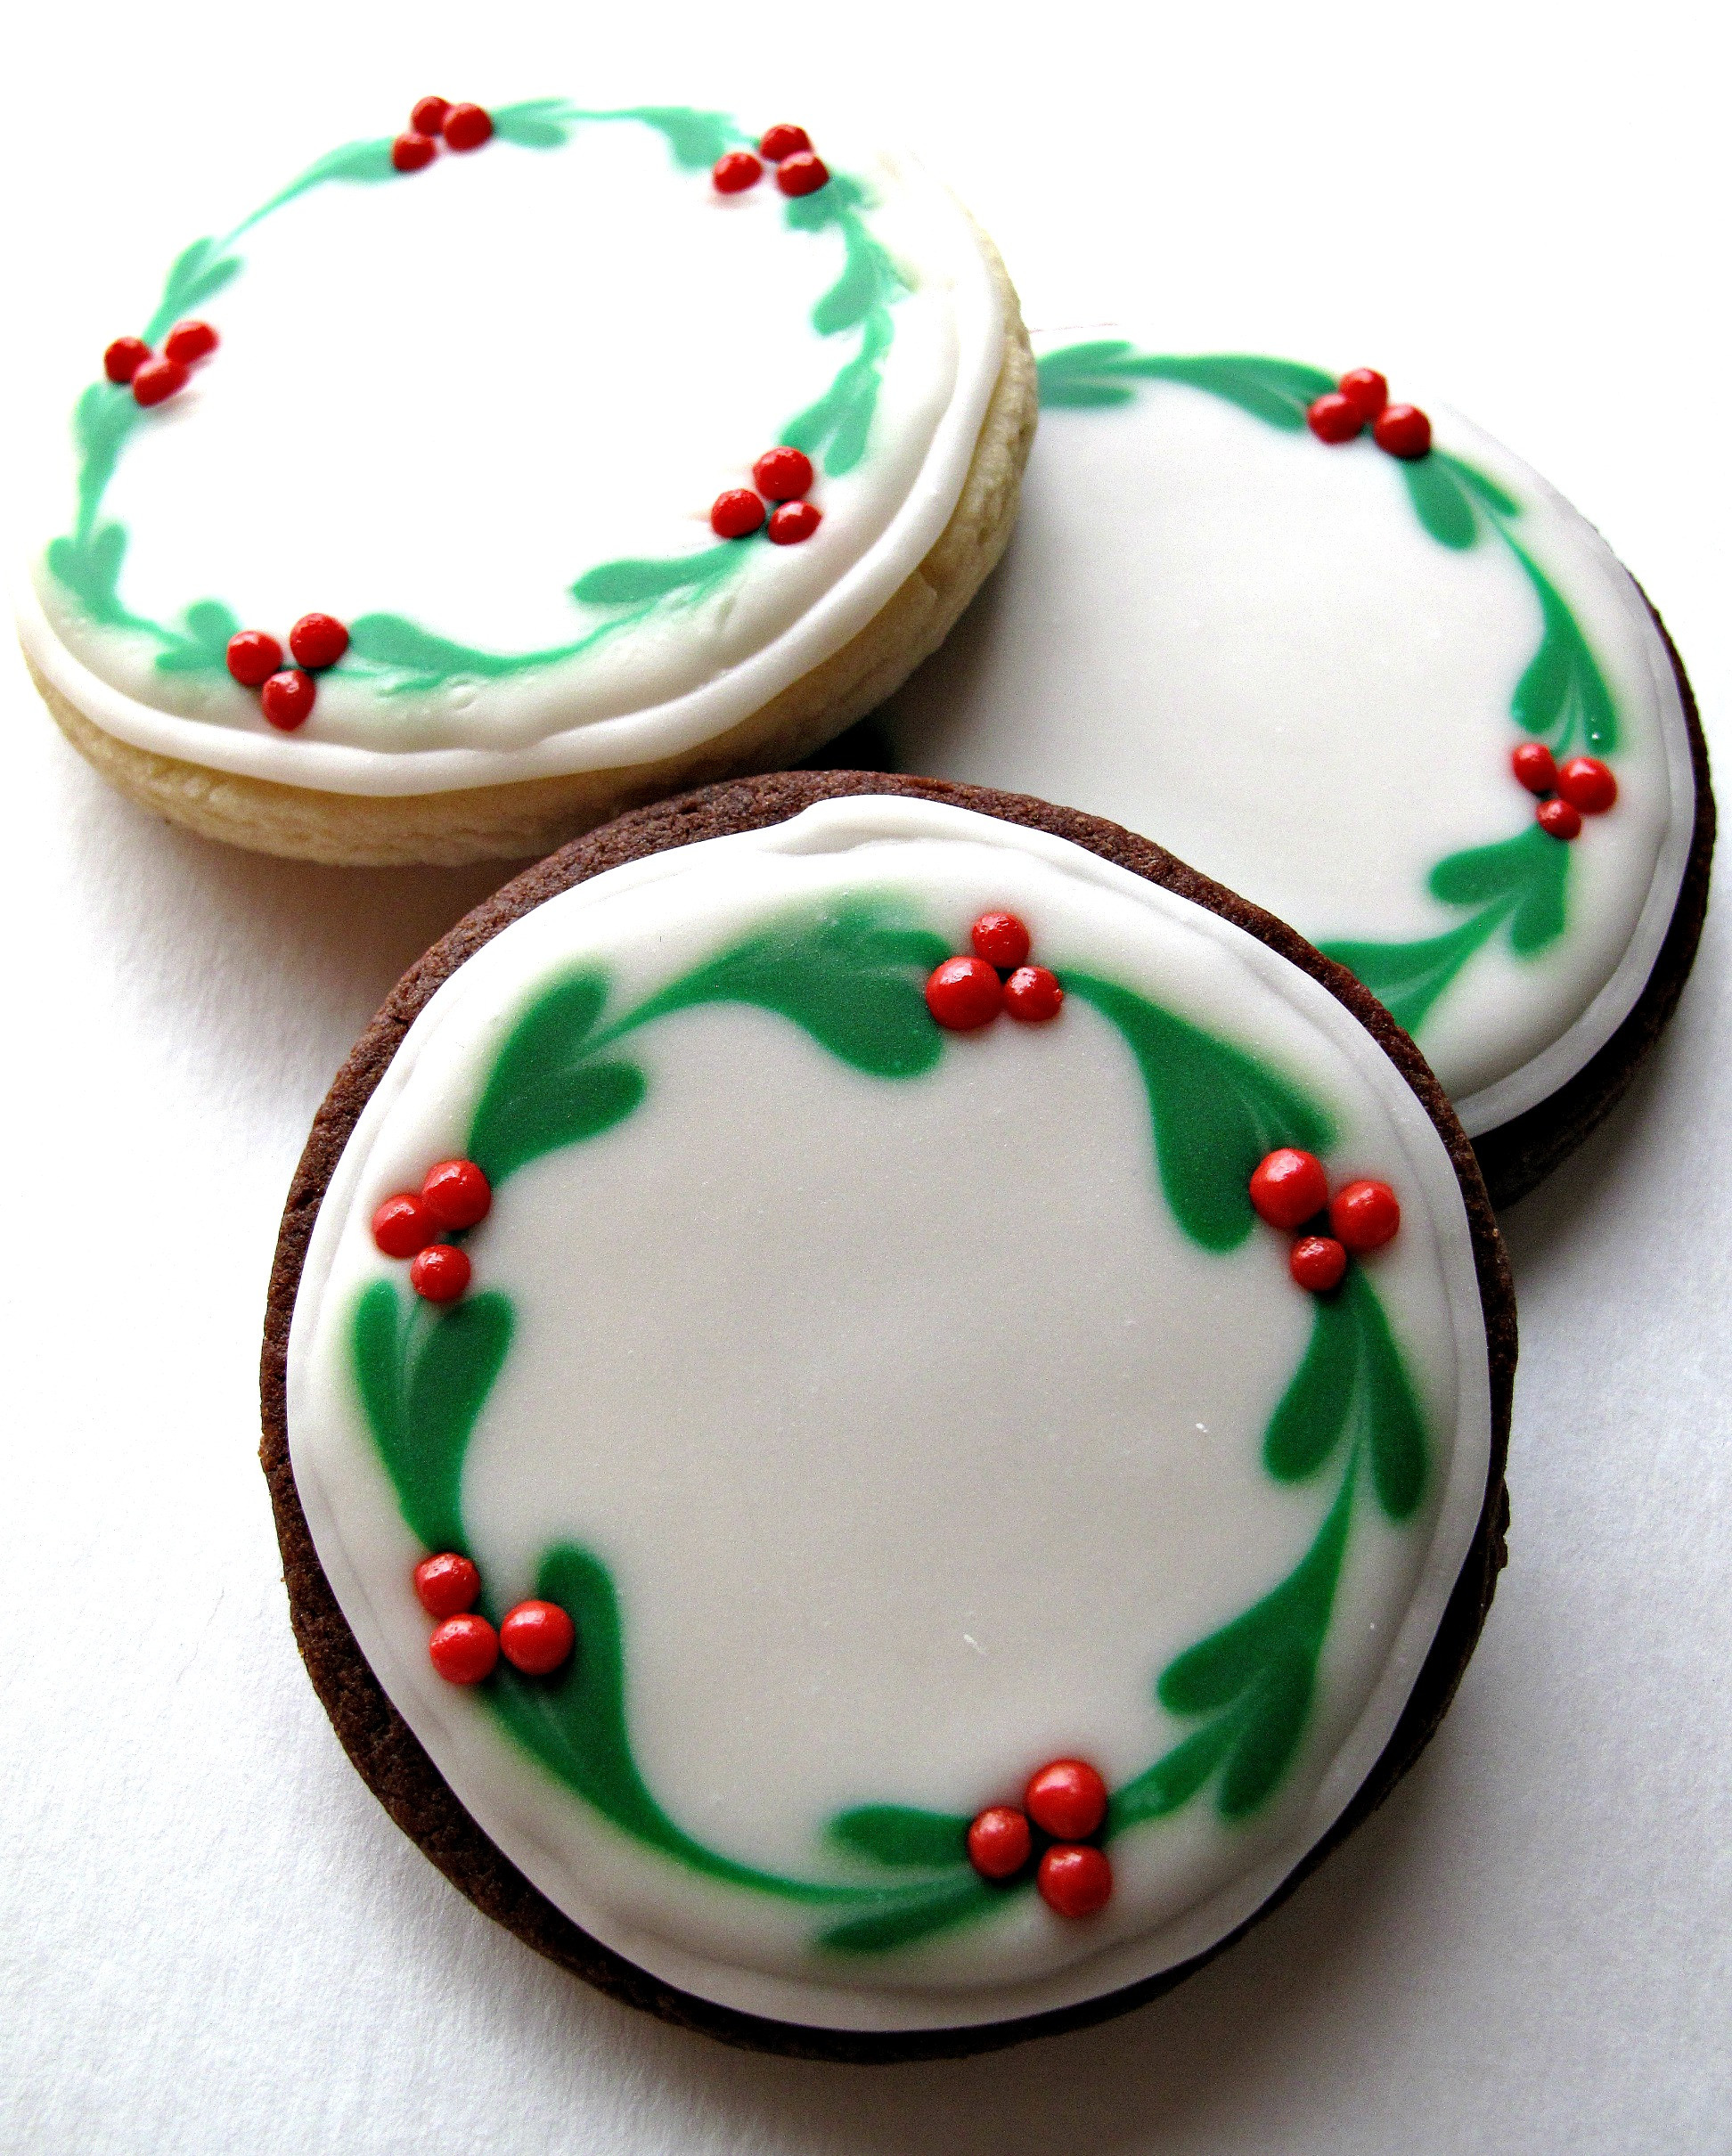 Easy Decorative Christmas Cookies  Chocolate Covered Oreos and Iced Christmas Sugar Cookies